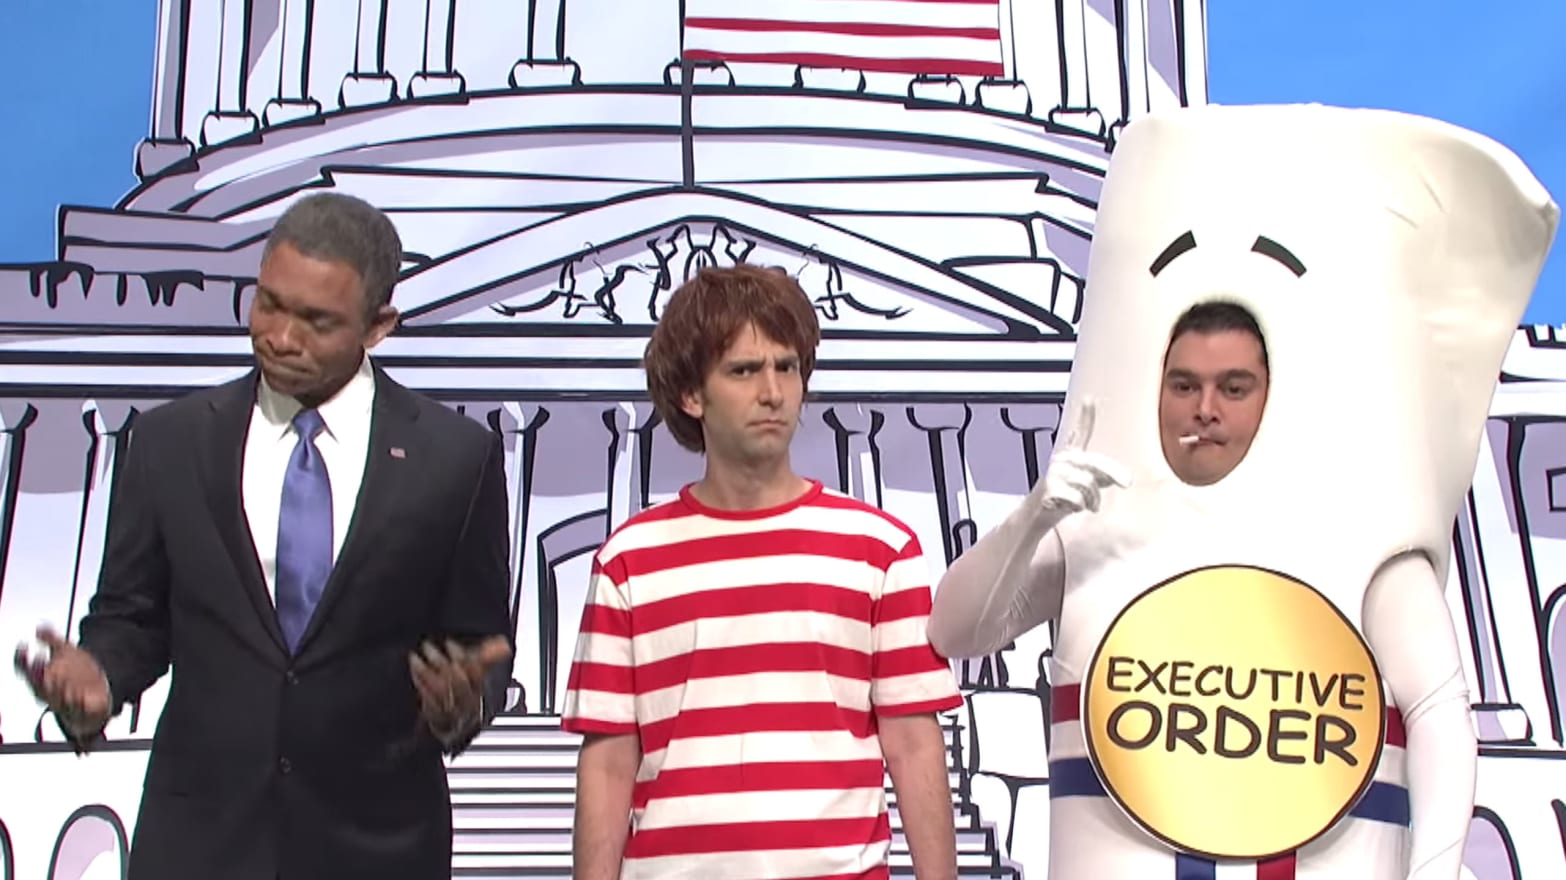 snl parodies schoolhouse rock hilariously gets a lot wrong